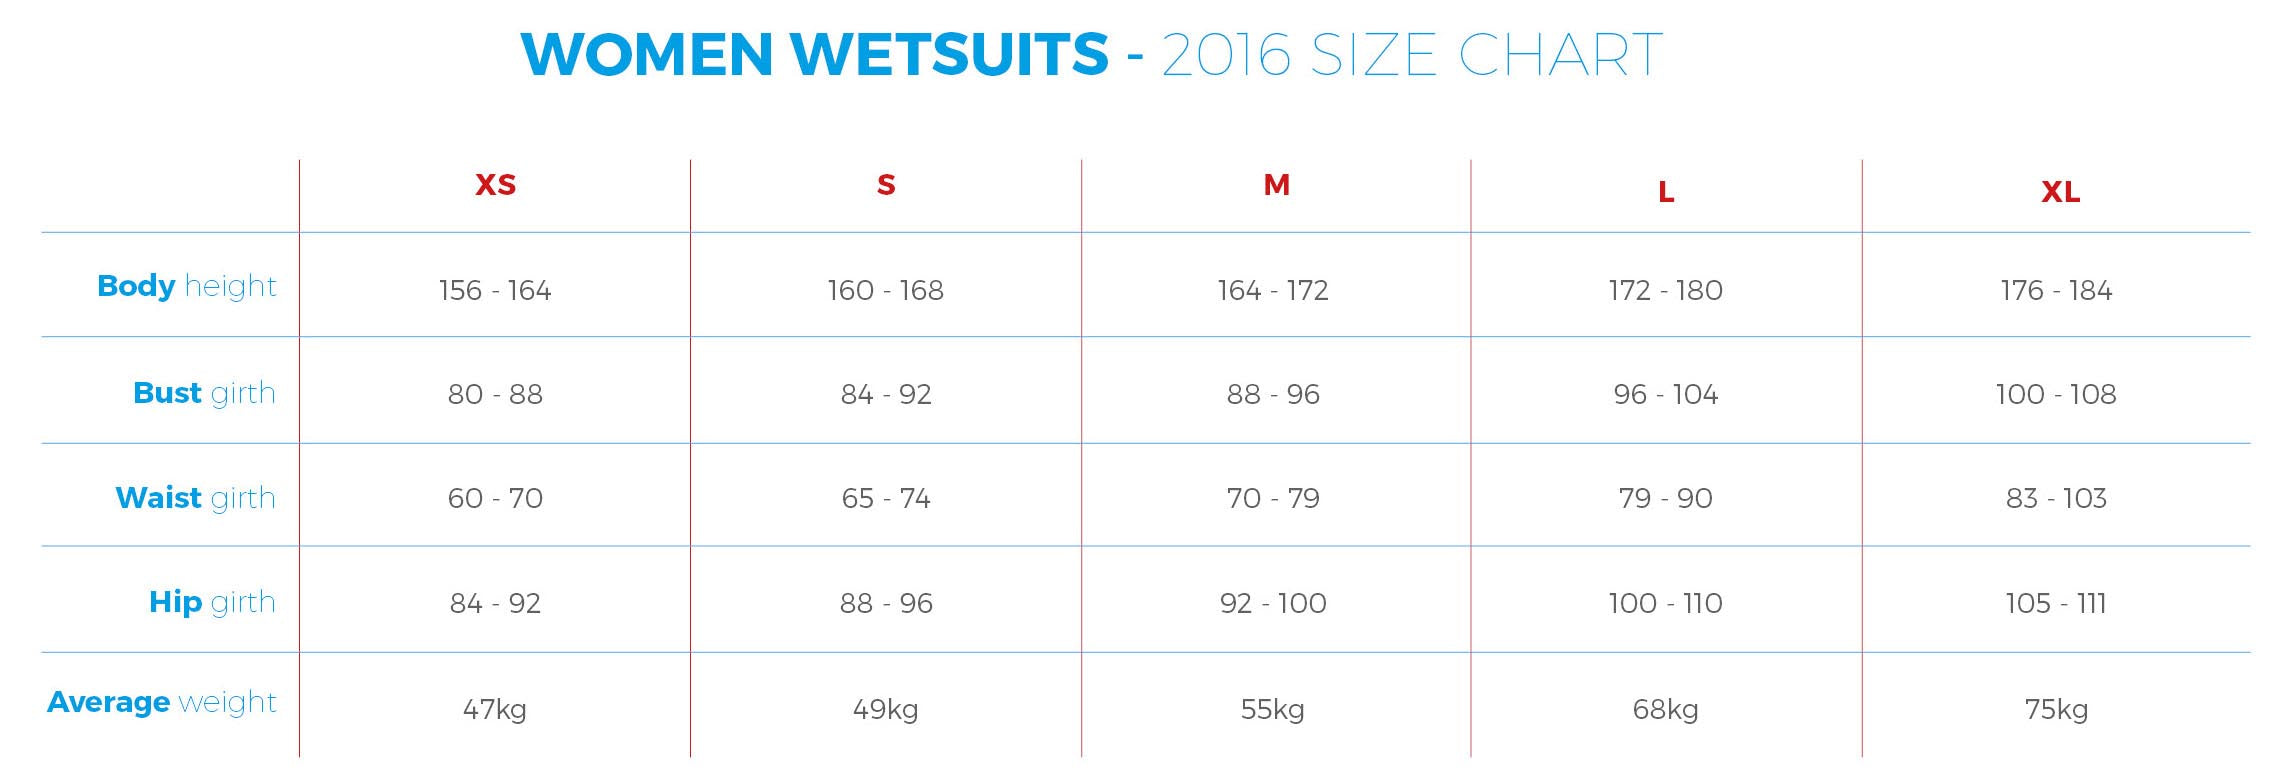 Manera Wetsuits Womens Size Guide Size Chart X10D 2016